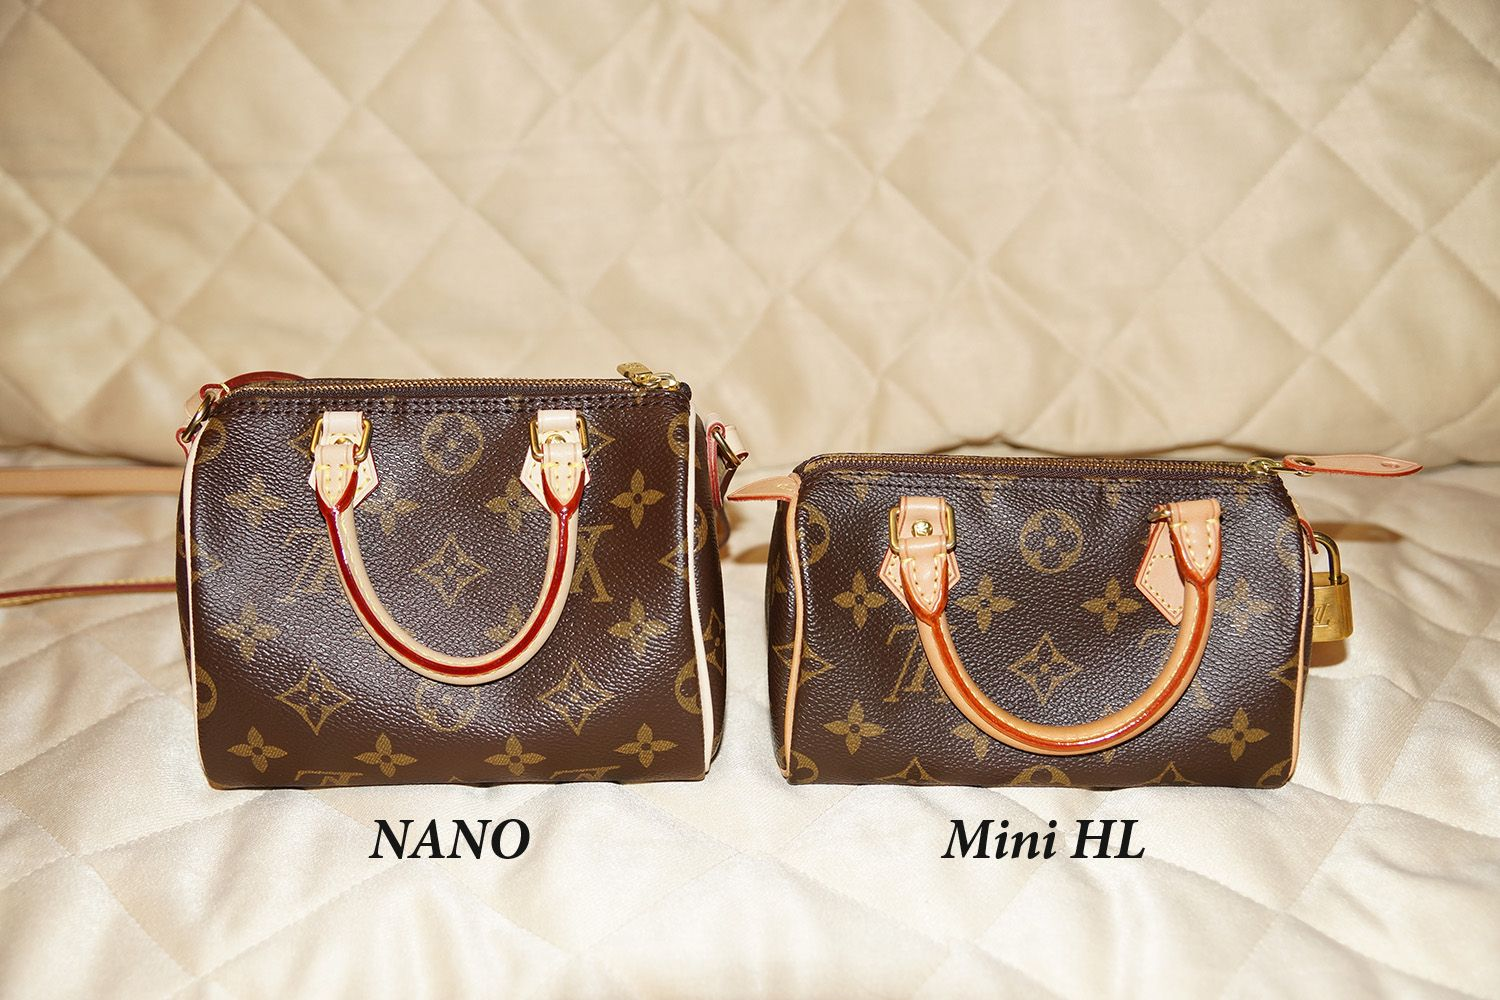 0d2b7fc5b91a8 Louis Vuitton Speedy size comparison  Nano vs. Mini HL